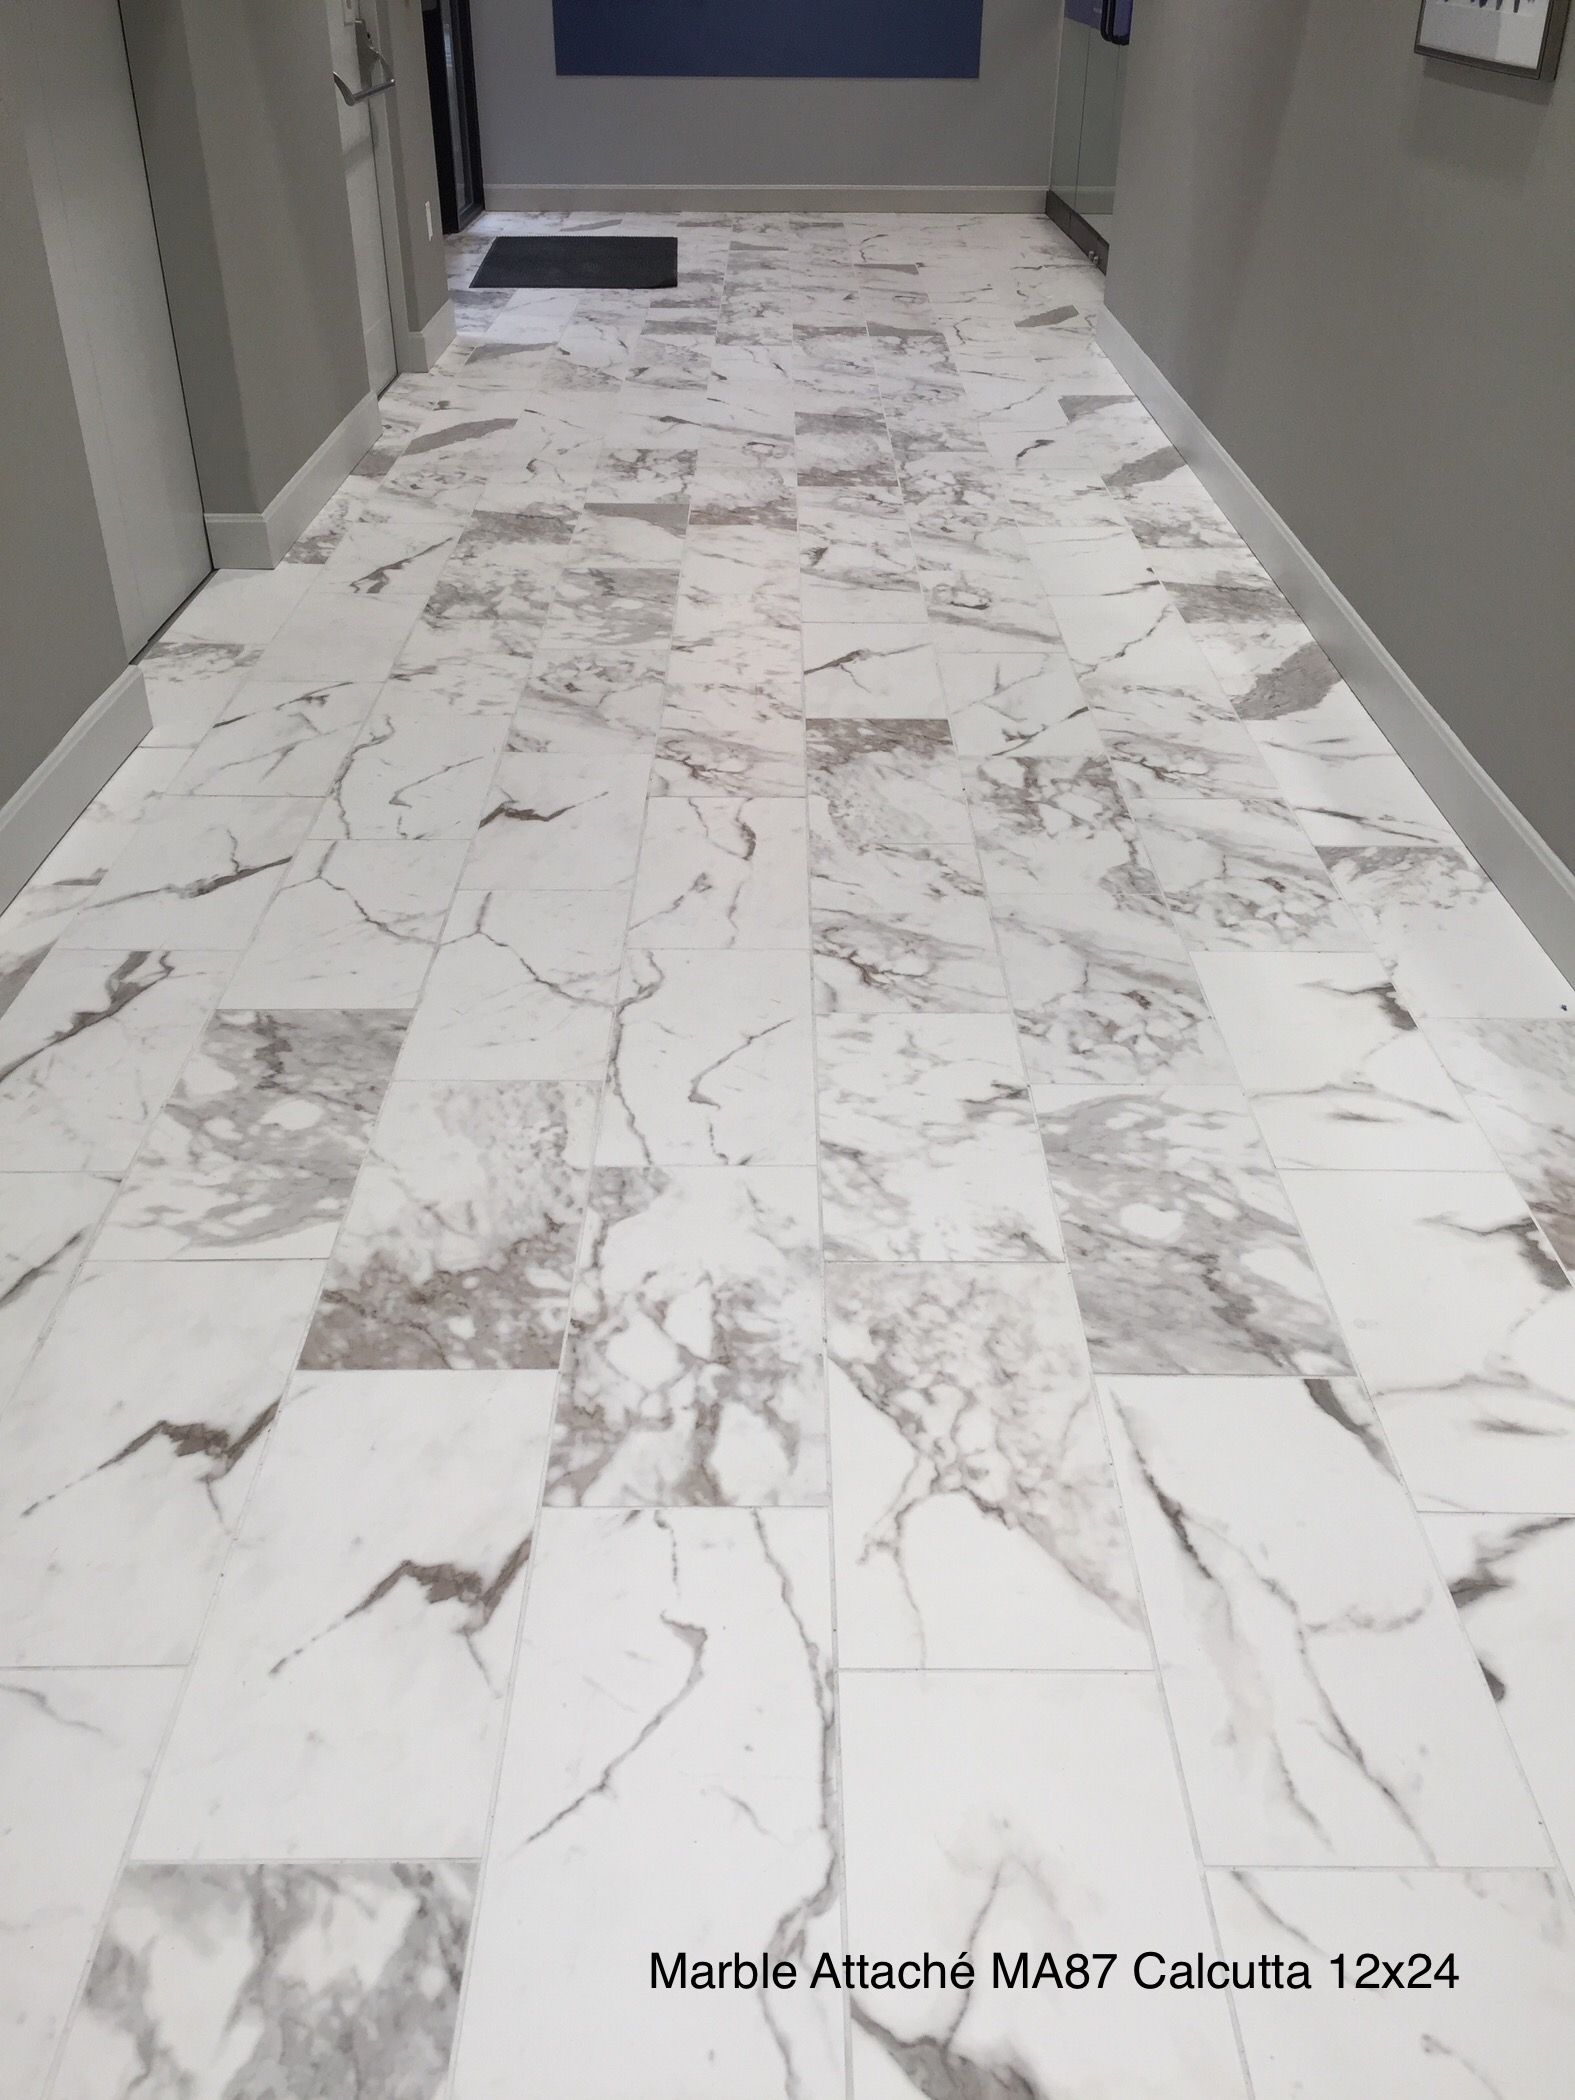 Daltile Marble Attach 233 In 2019 Marble Tiles Tile Floor